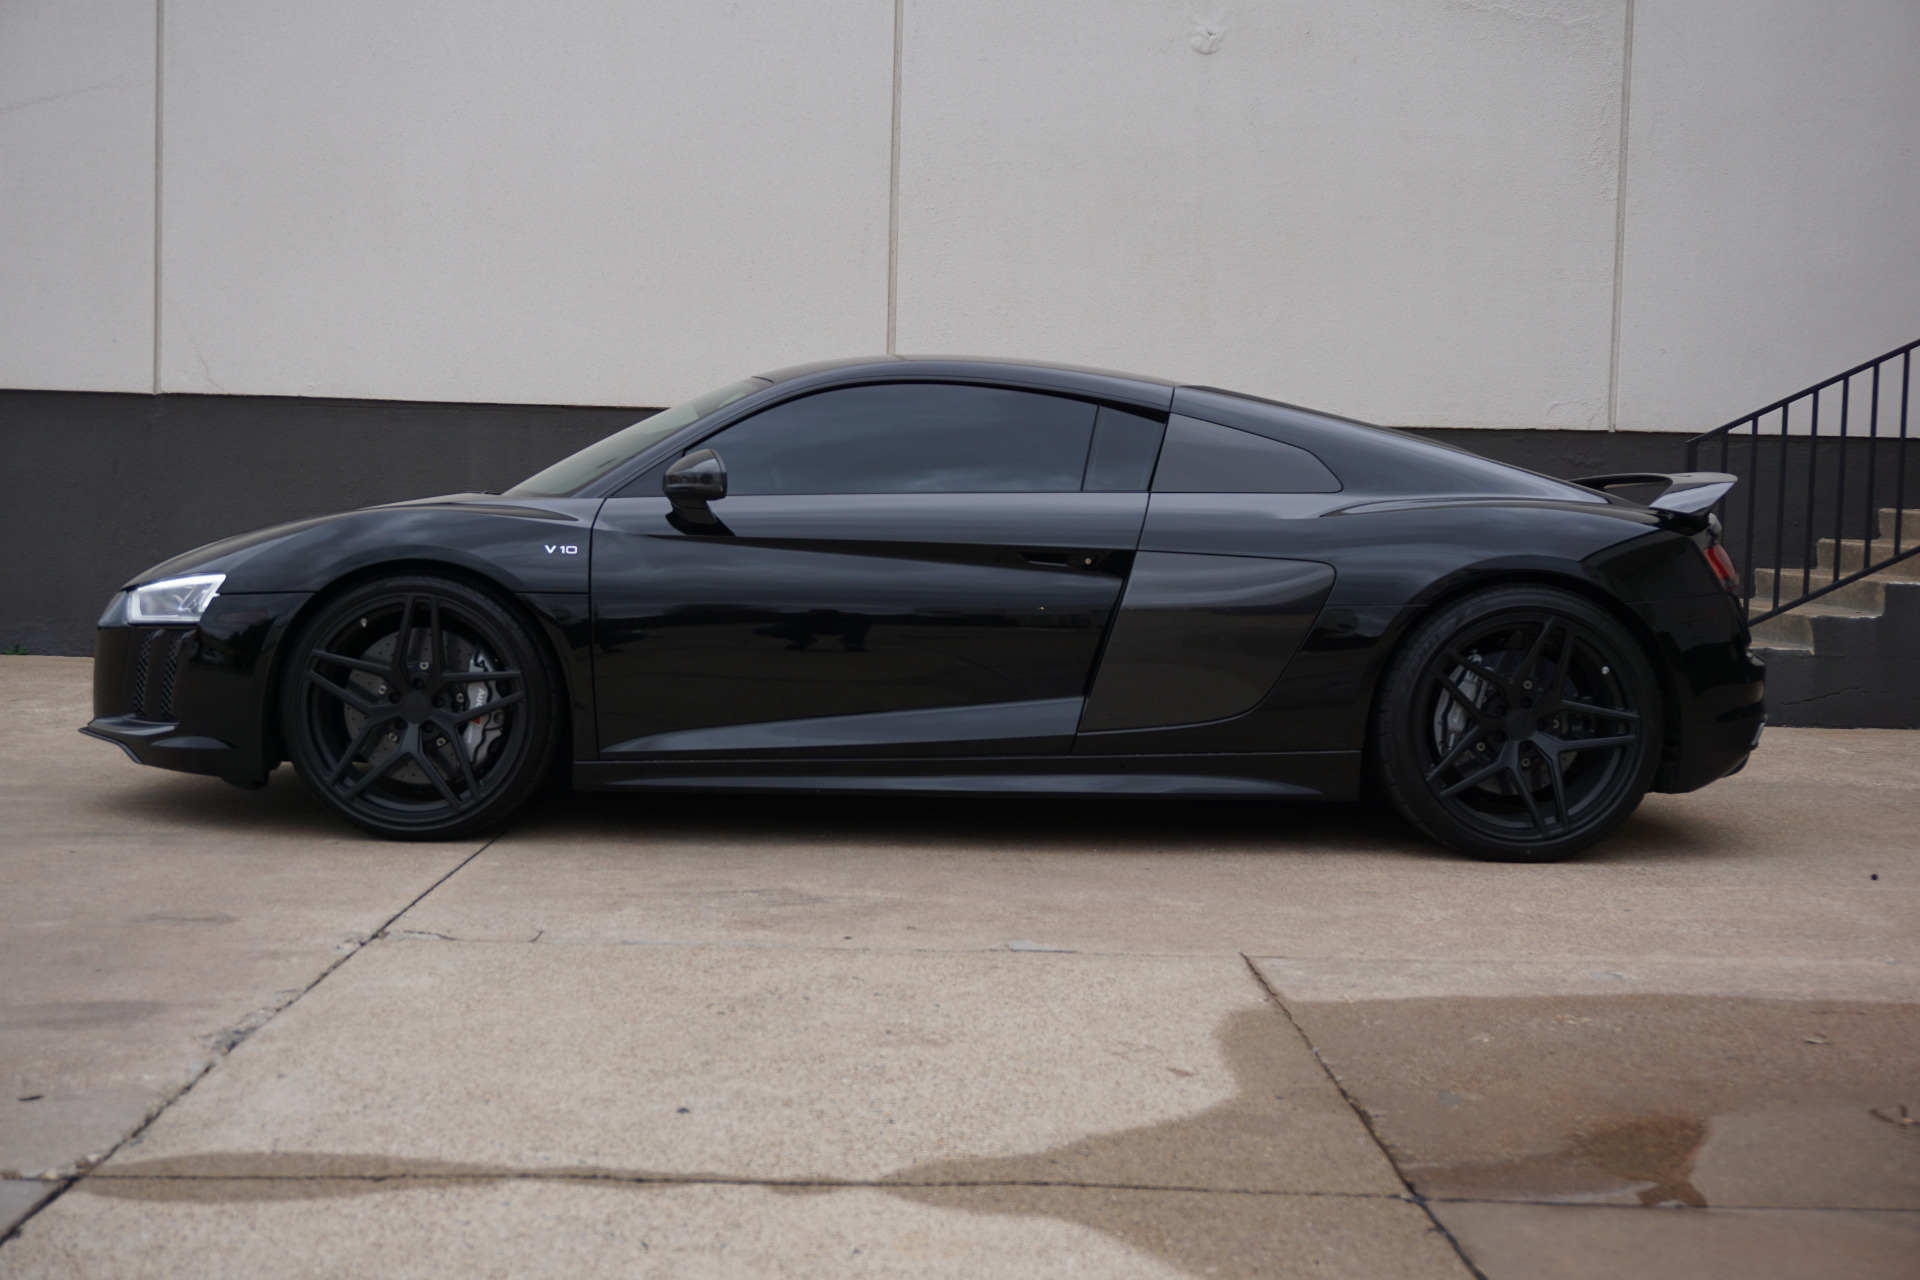 Used 2017 Audi R8 52 Quattro V10 Plus For Sale 162900